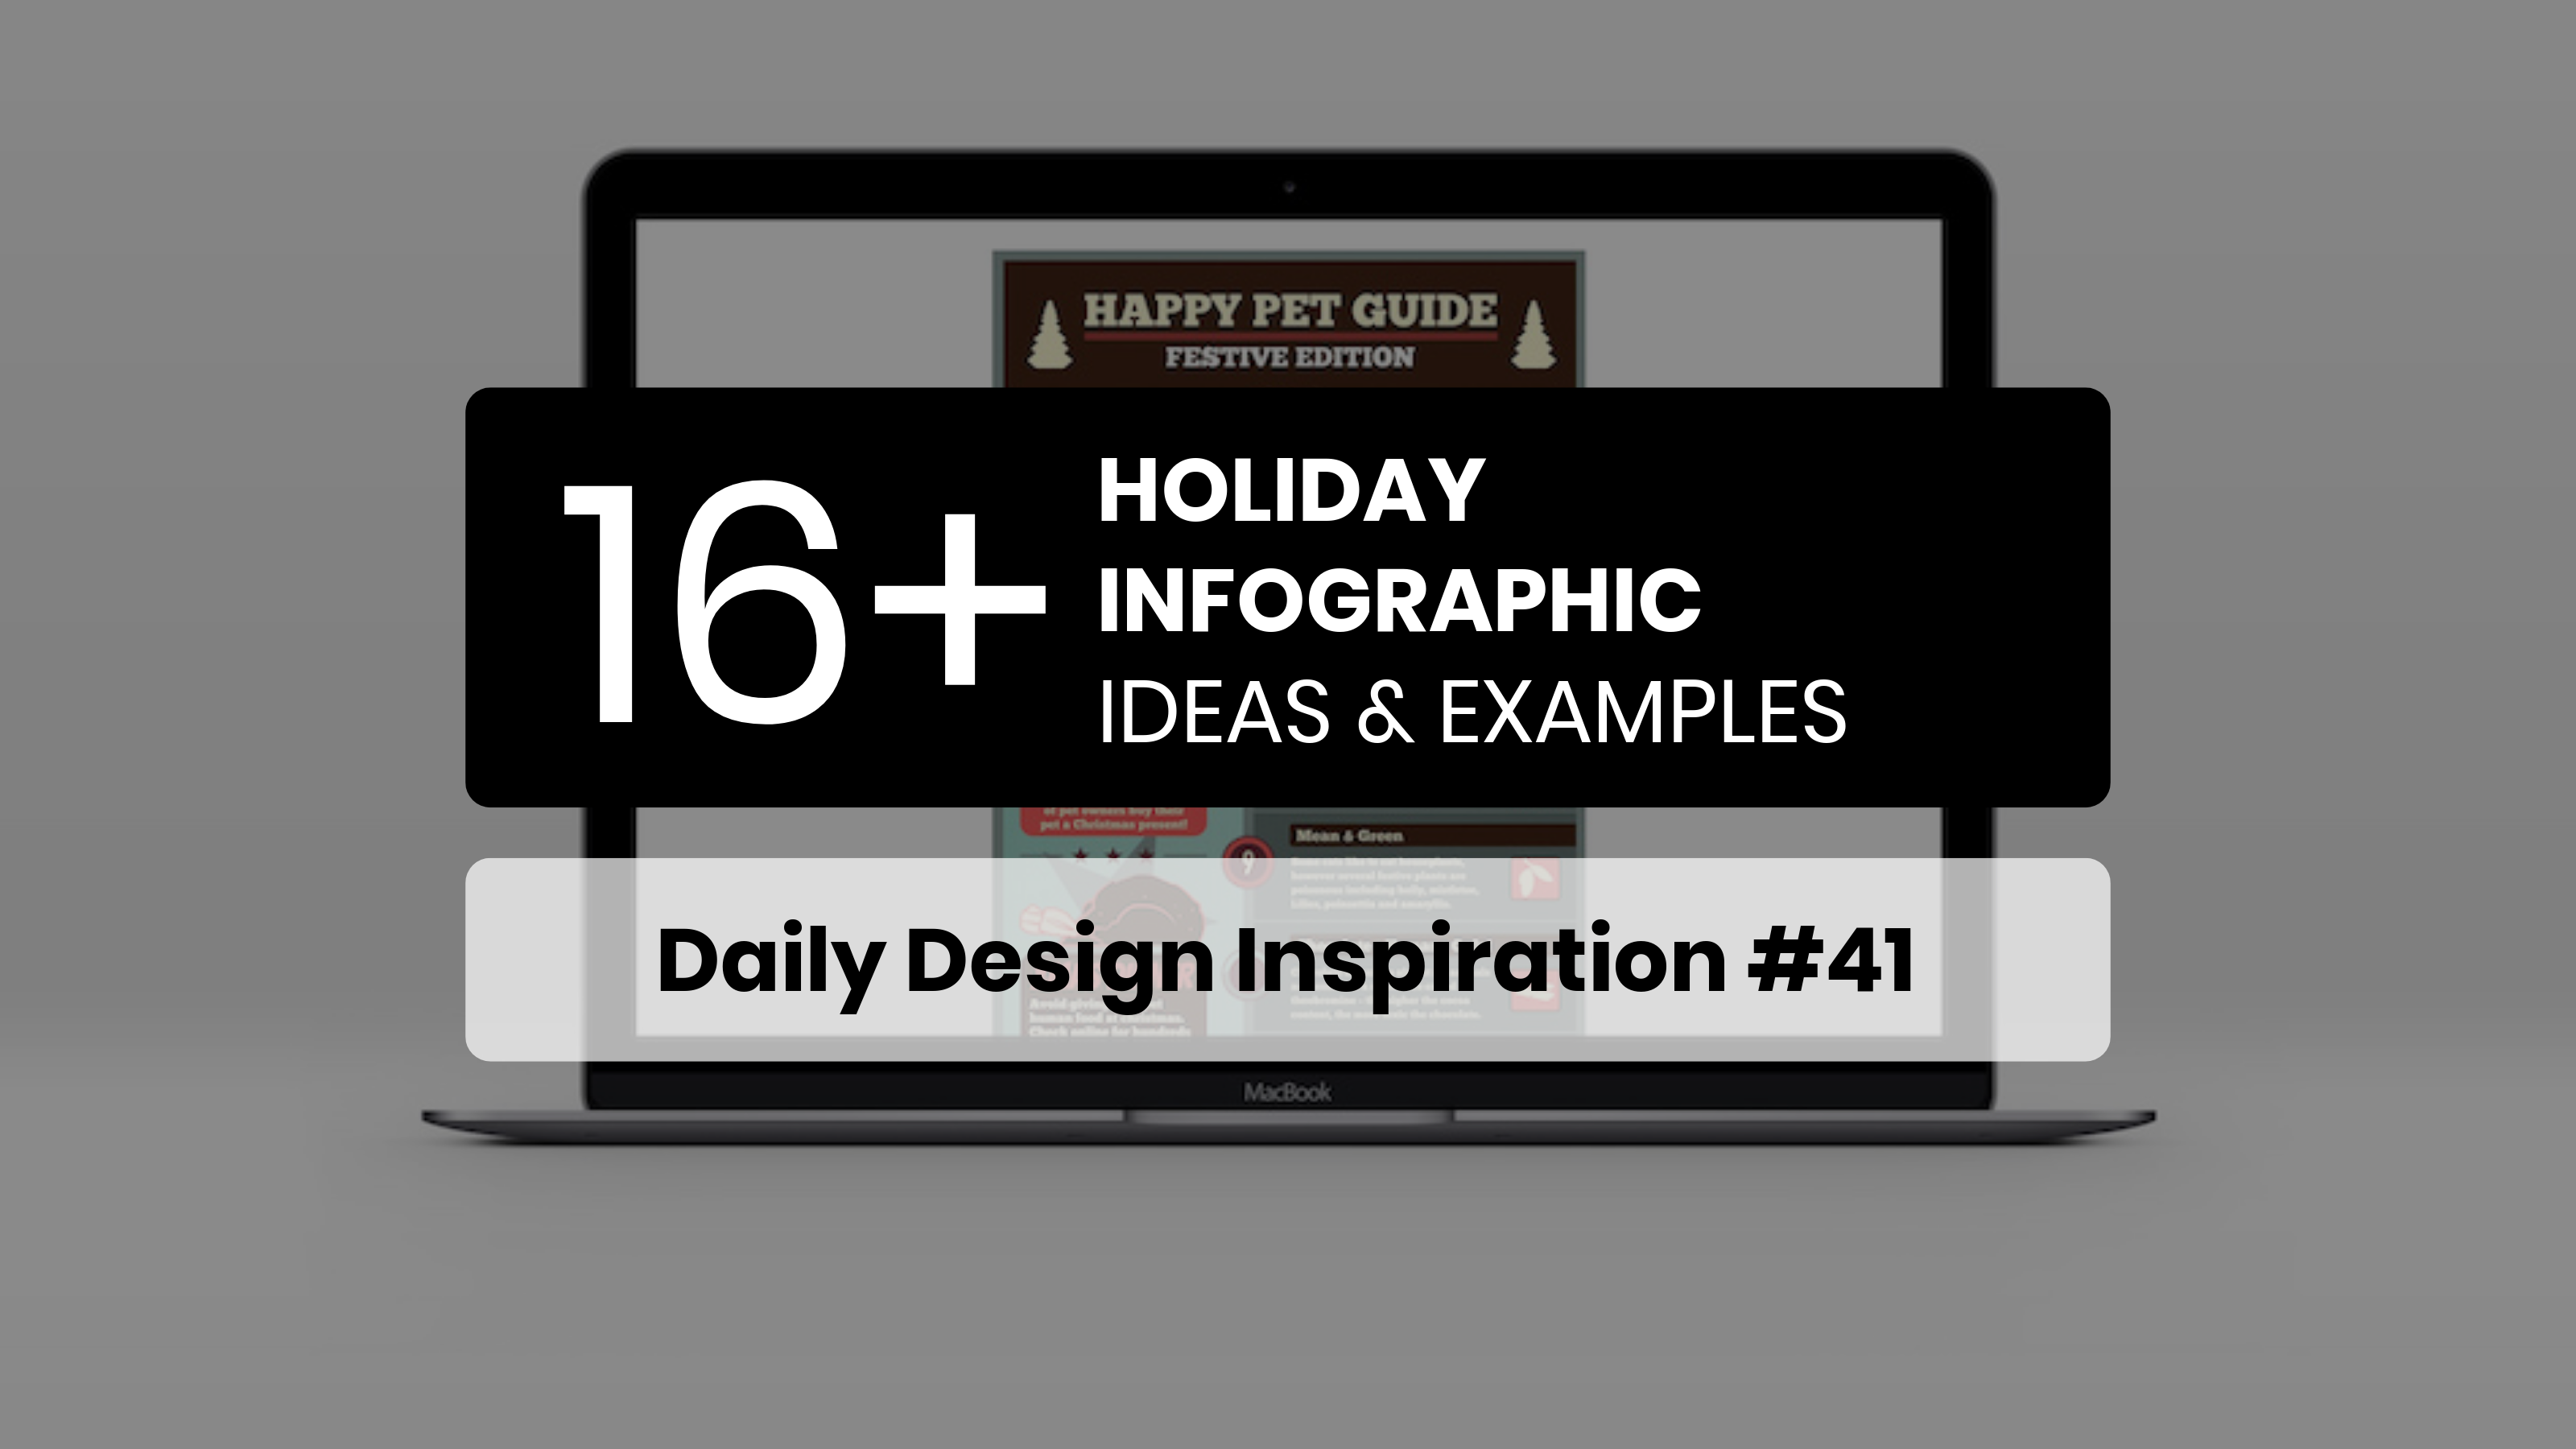 16+ Holiday Infographic Design Ideas, Examples & Templates - Daily Design Inspiration #41